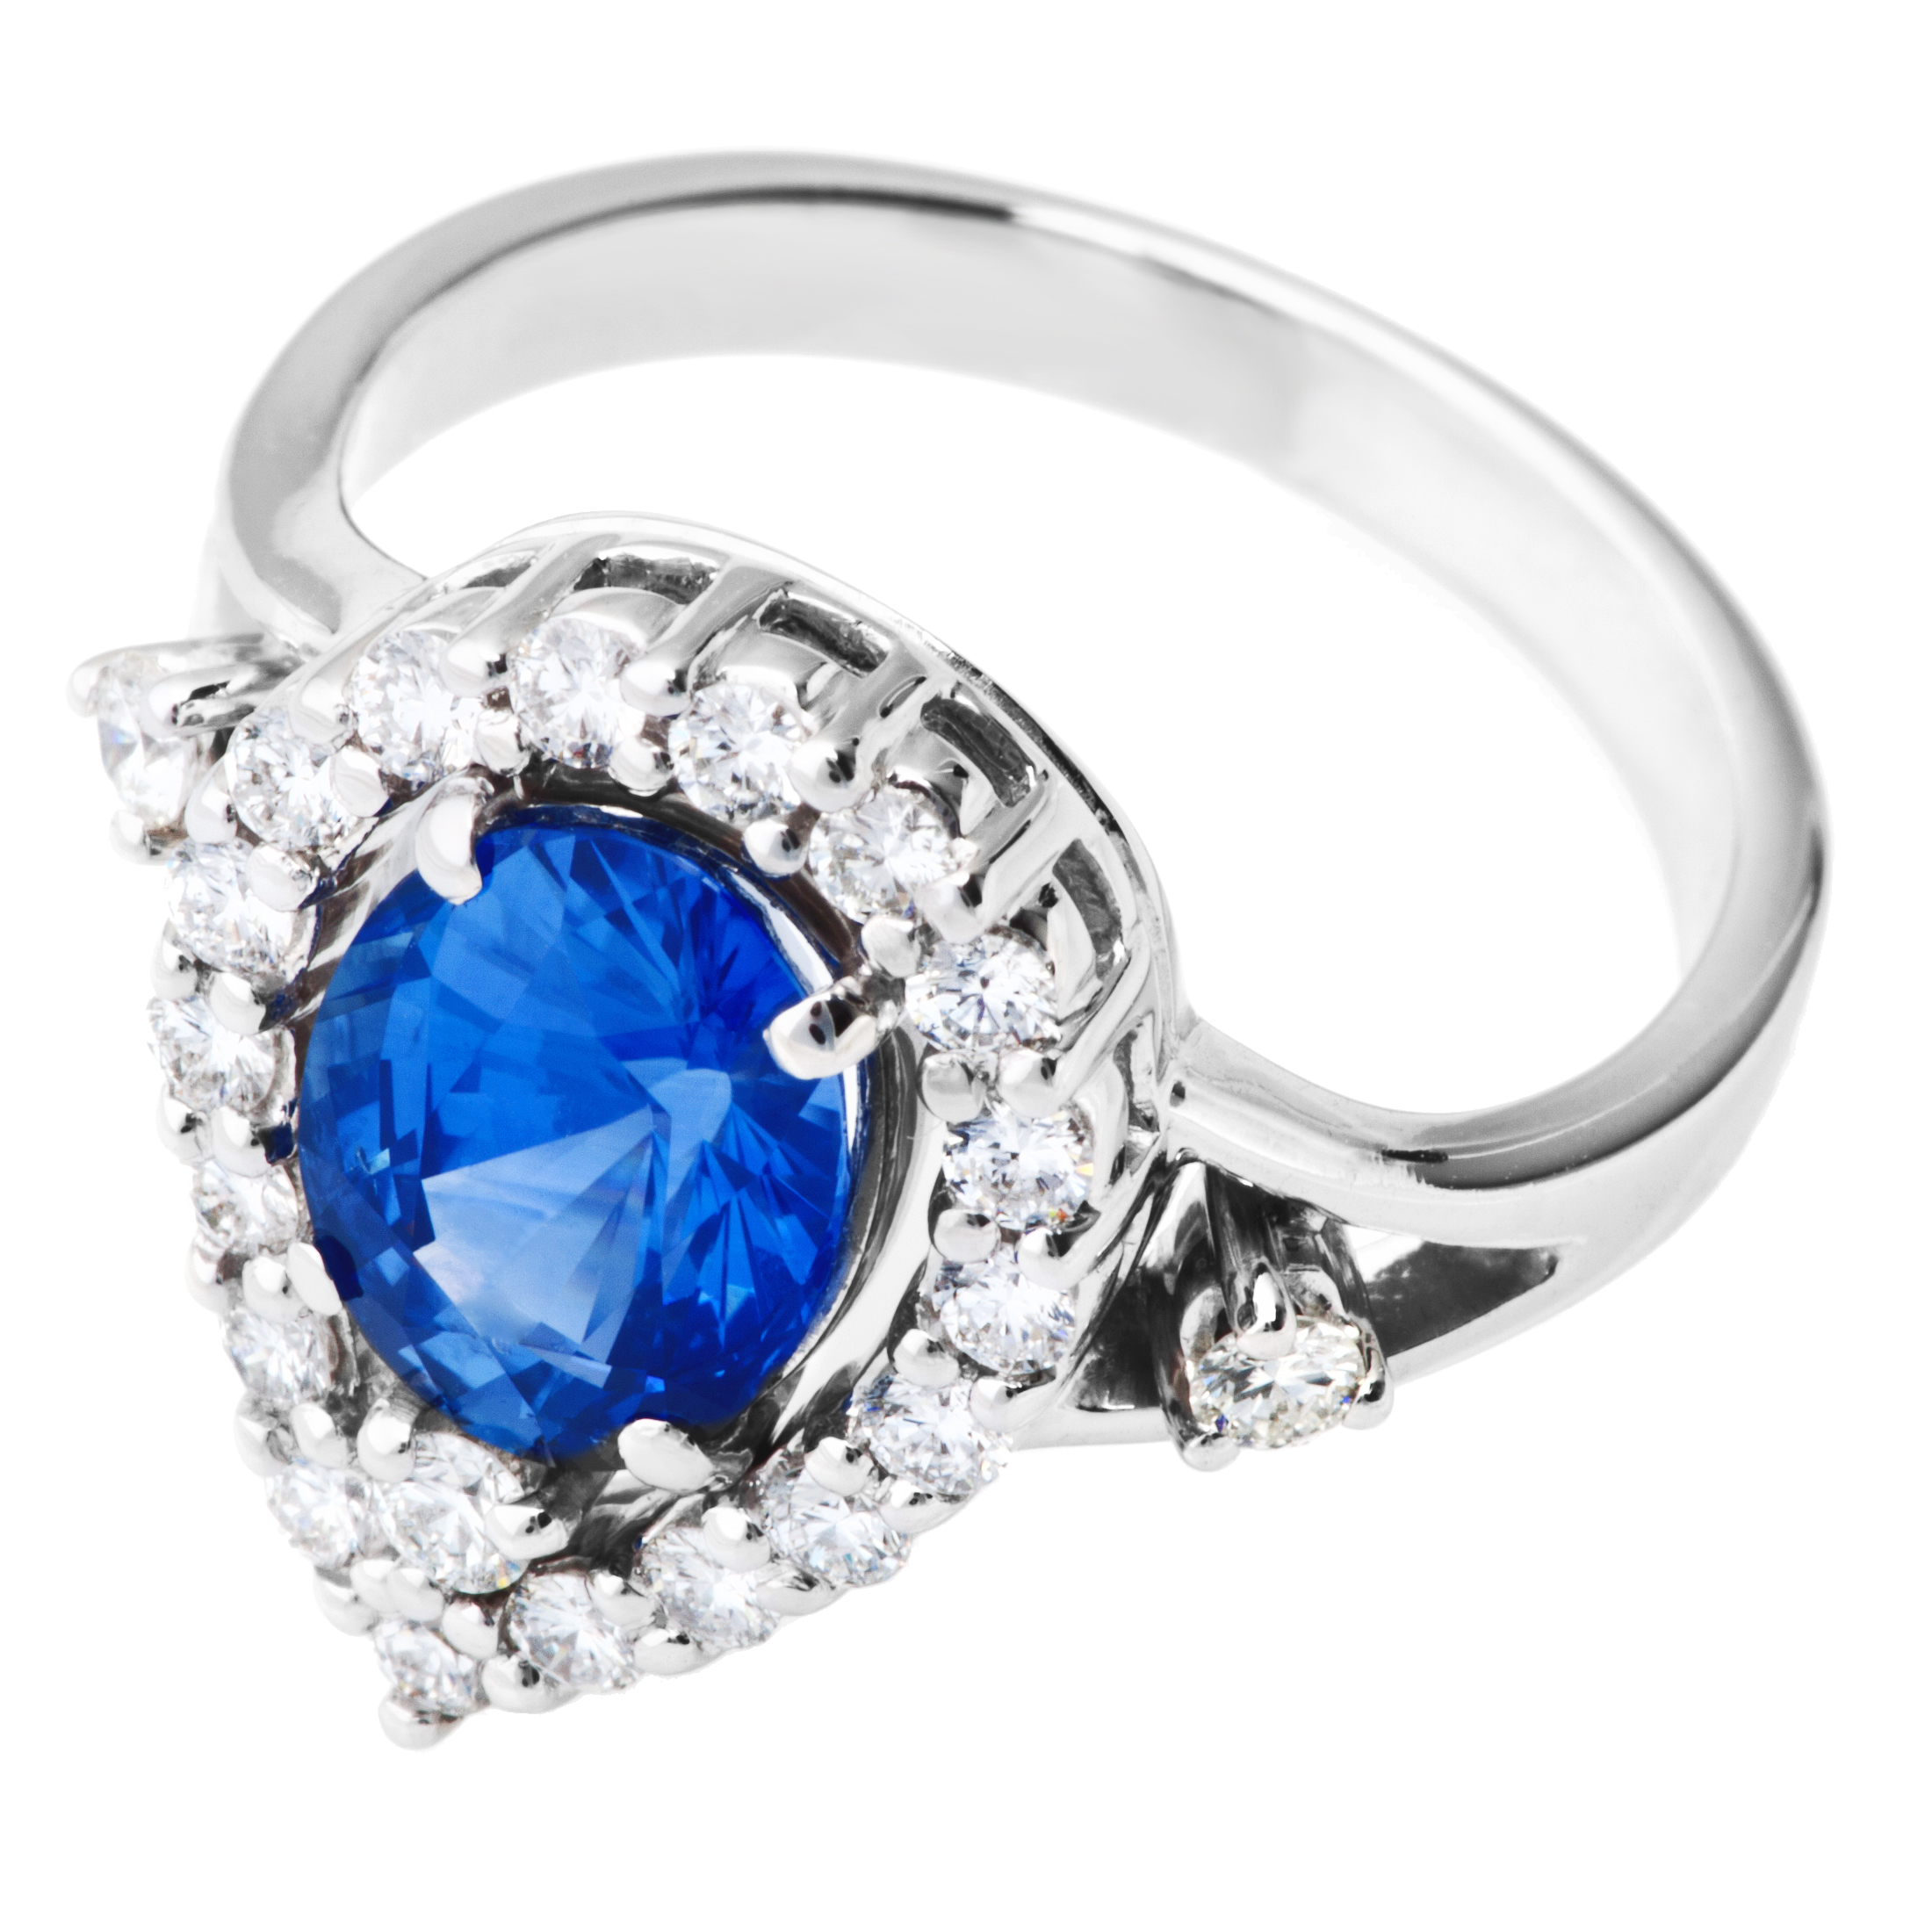 sapphires sapphire london polished diamond exchange emerald shutterstock